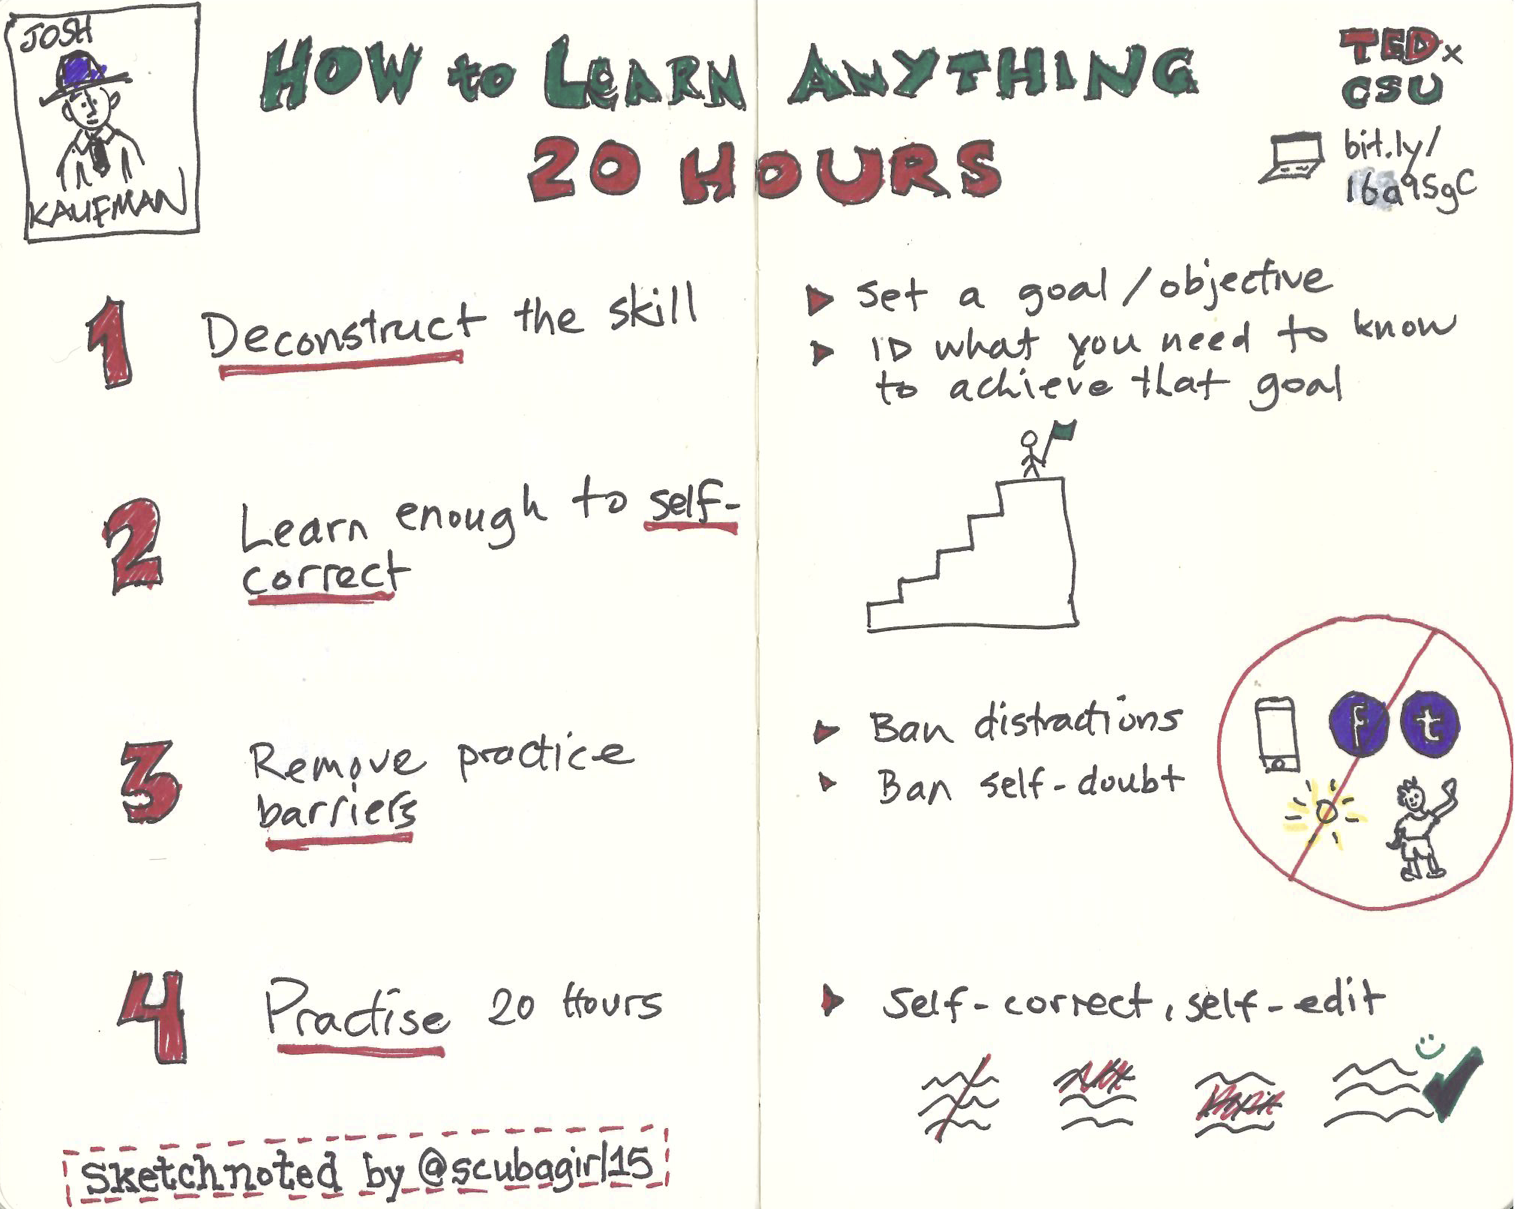 Learn Anything 20 Hours